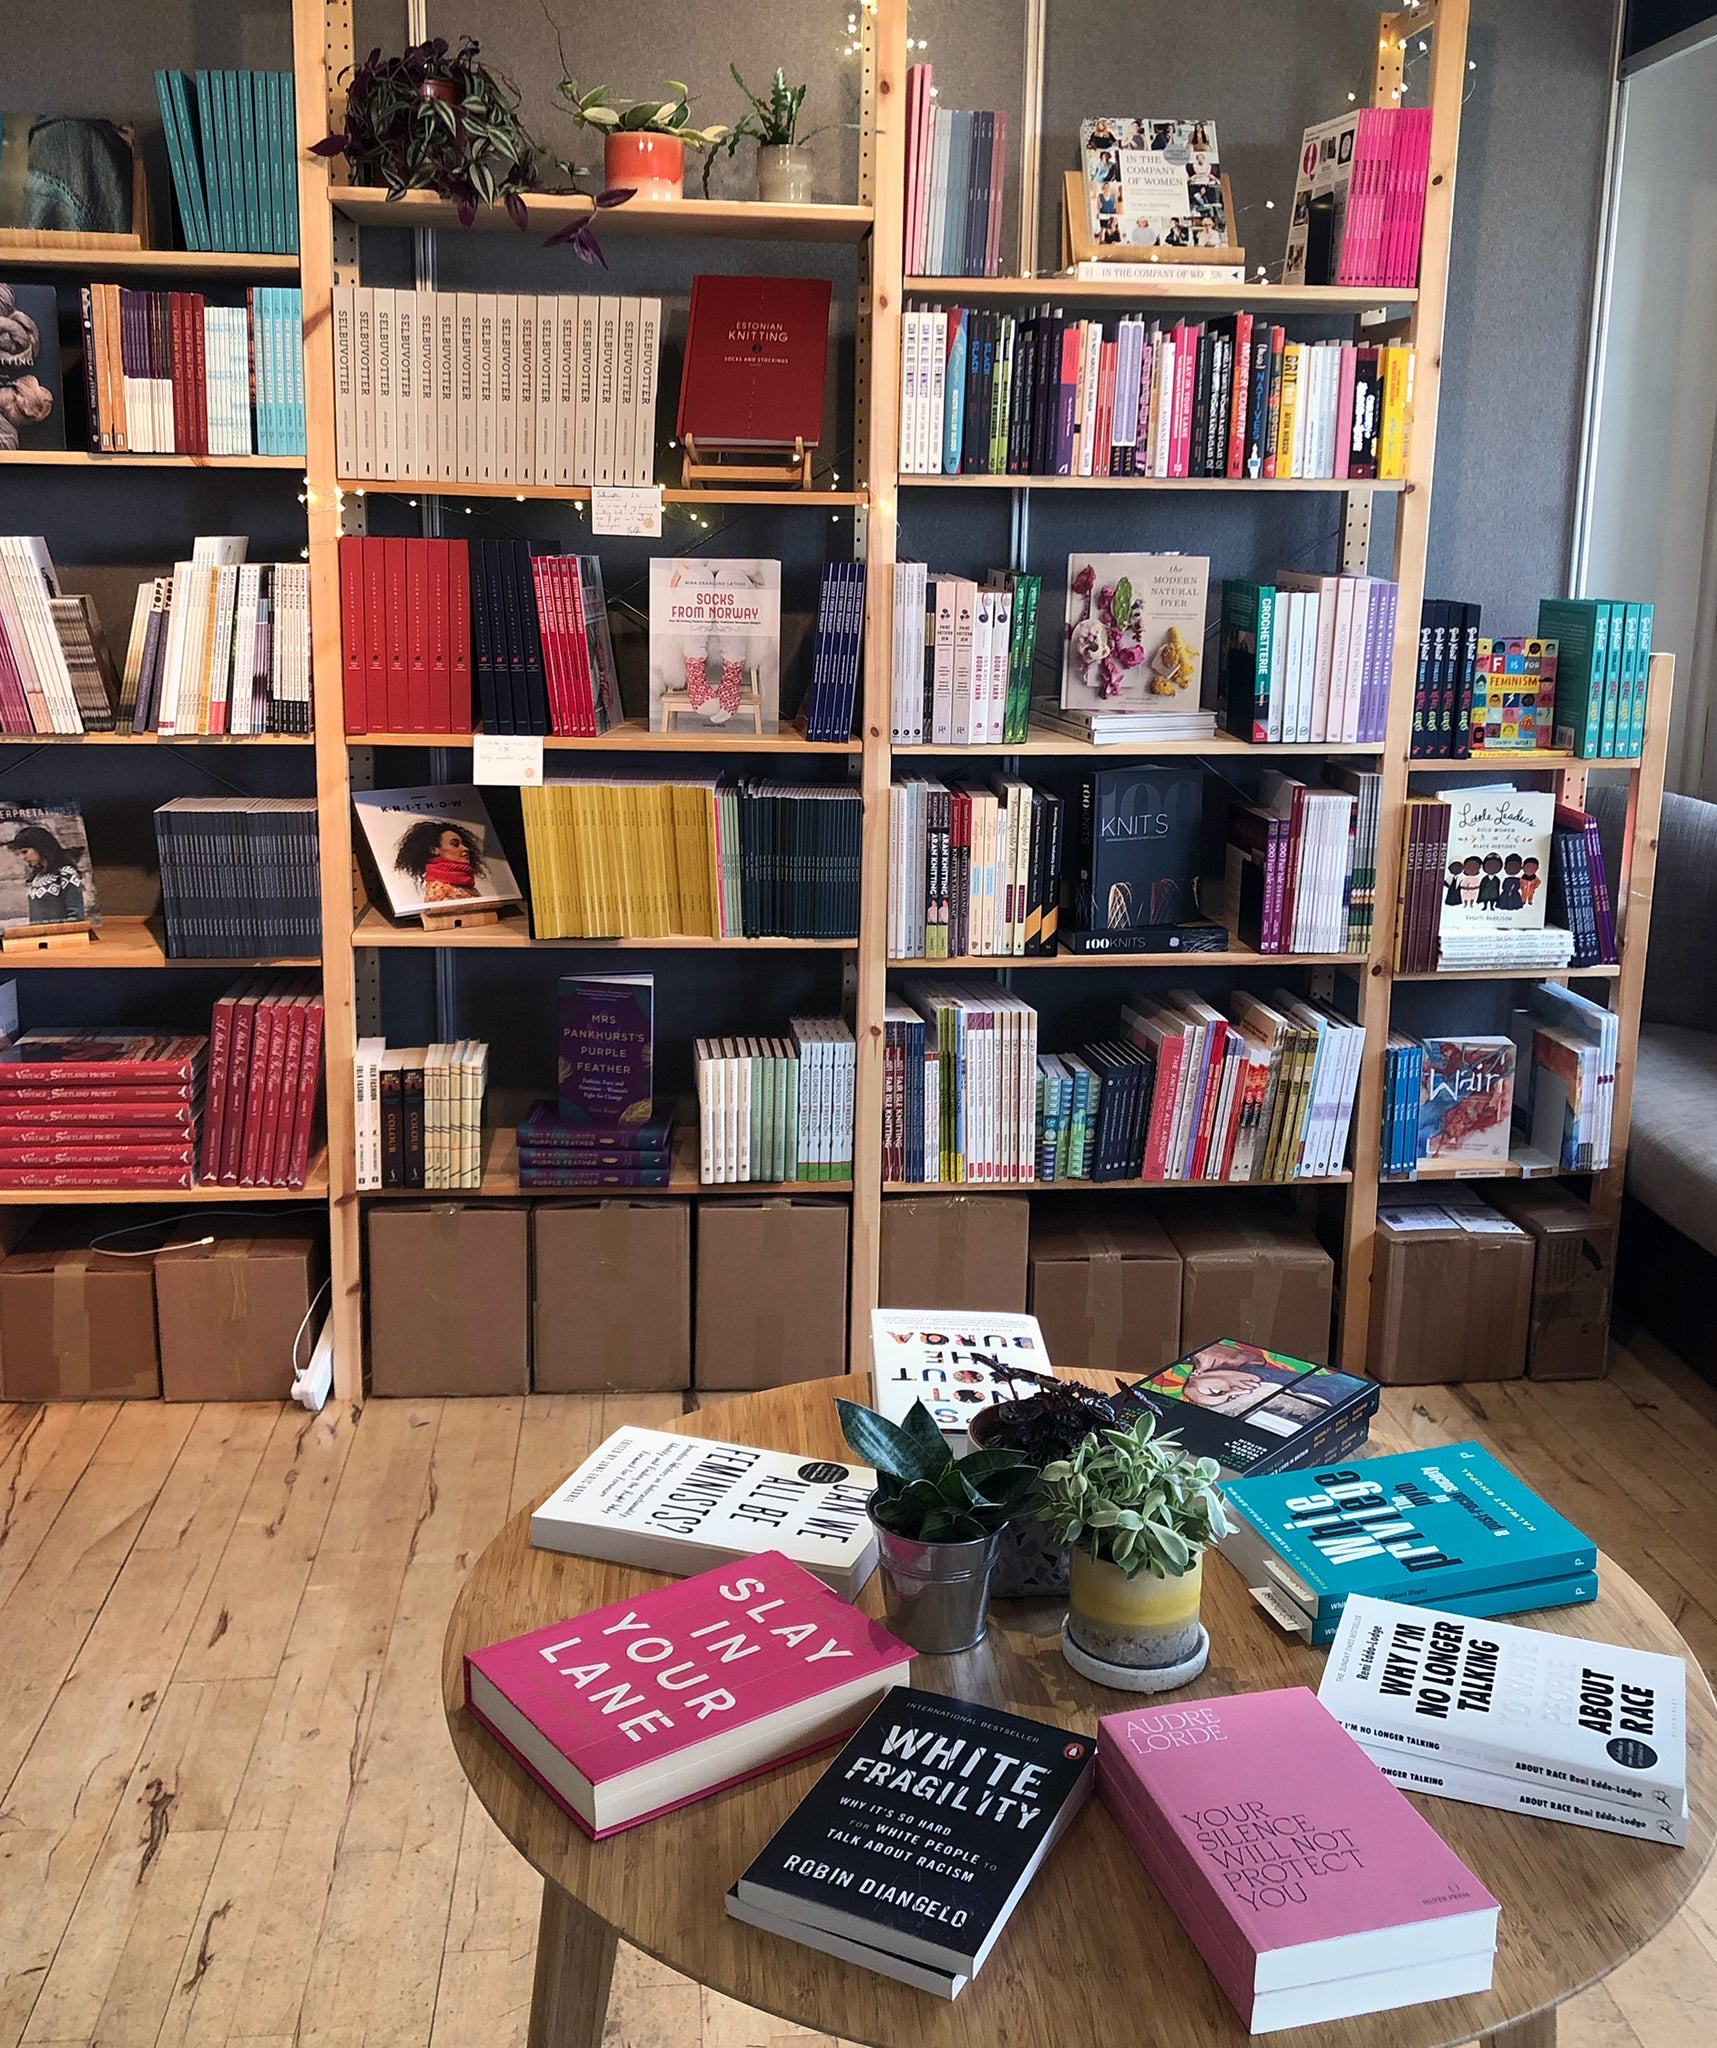 Books arranged on a round table in the foreground with shelves of books and plants in the background